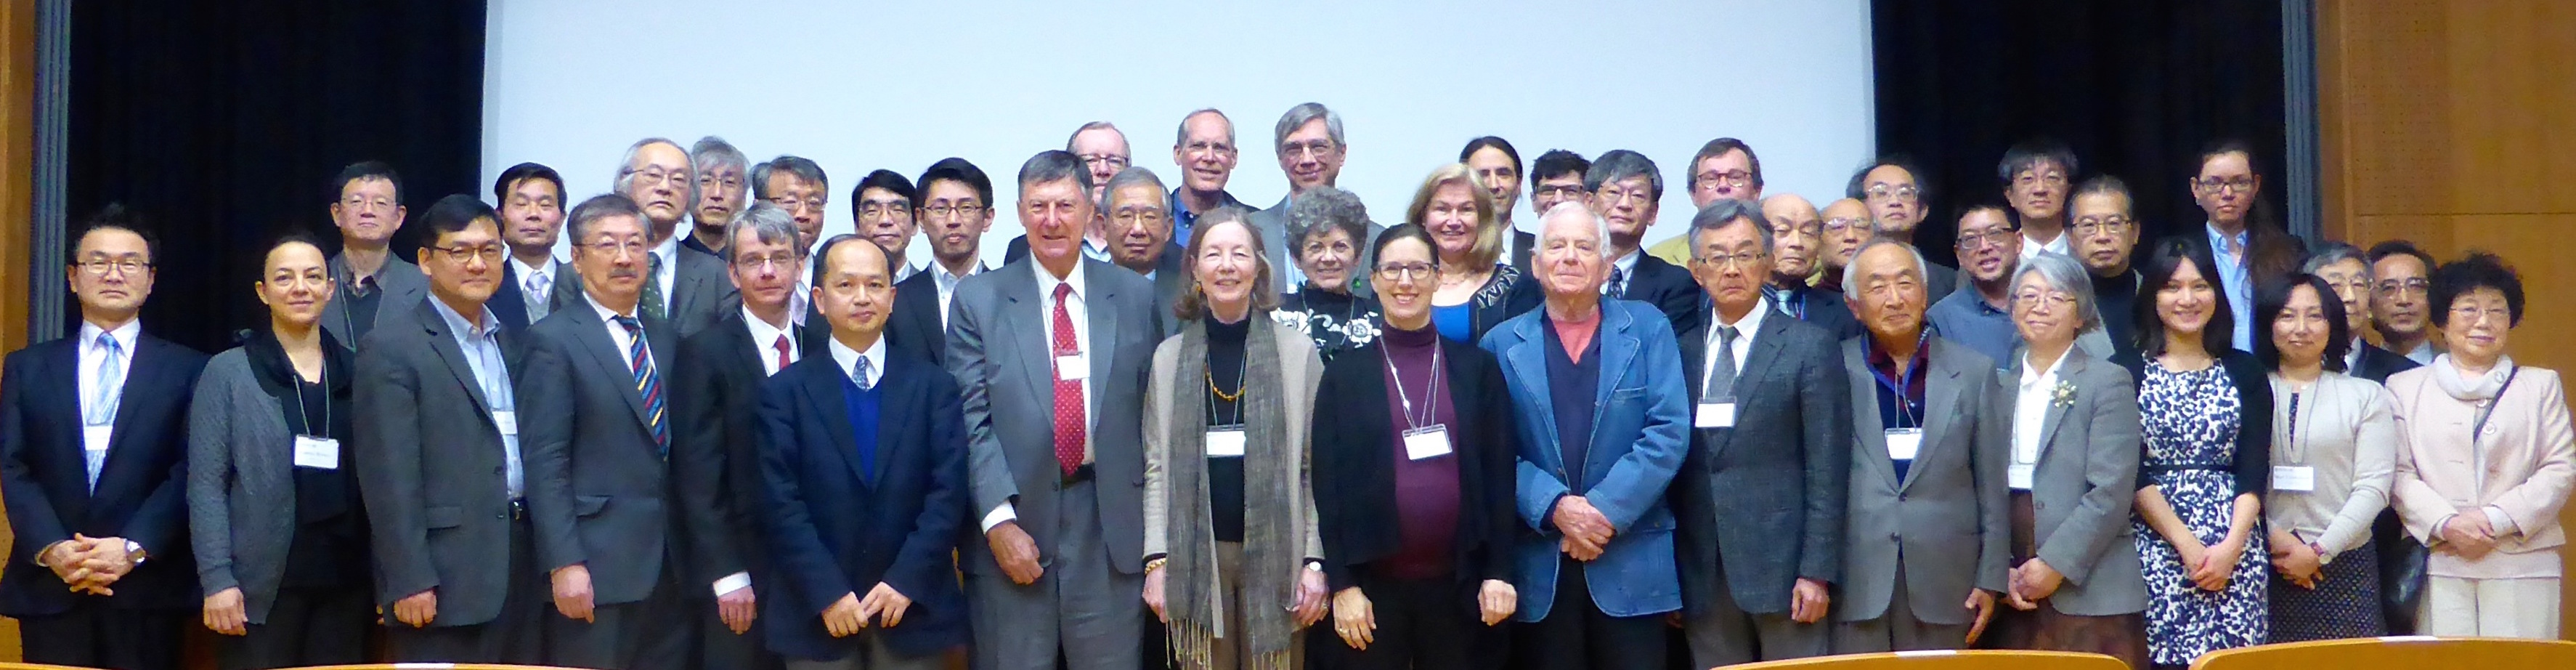 iwhc2015 group photo